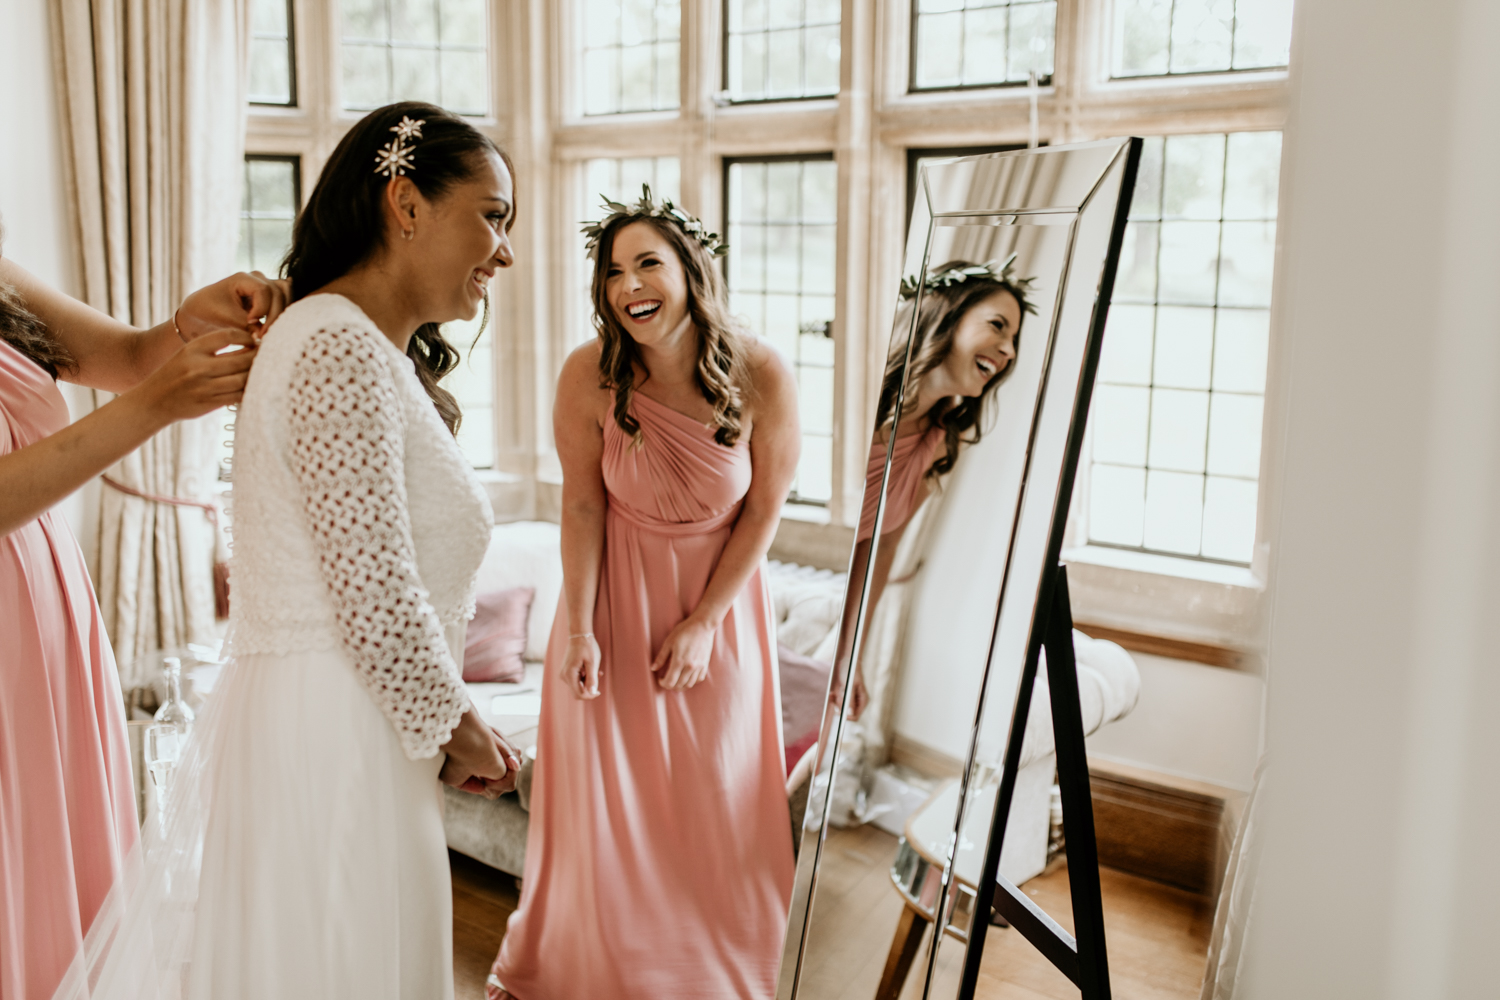 bridesmaids and bride in front of mirror before the outdoor wedding ceremony at Coombe Lodge Blagdon wedding venue